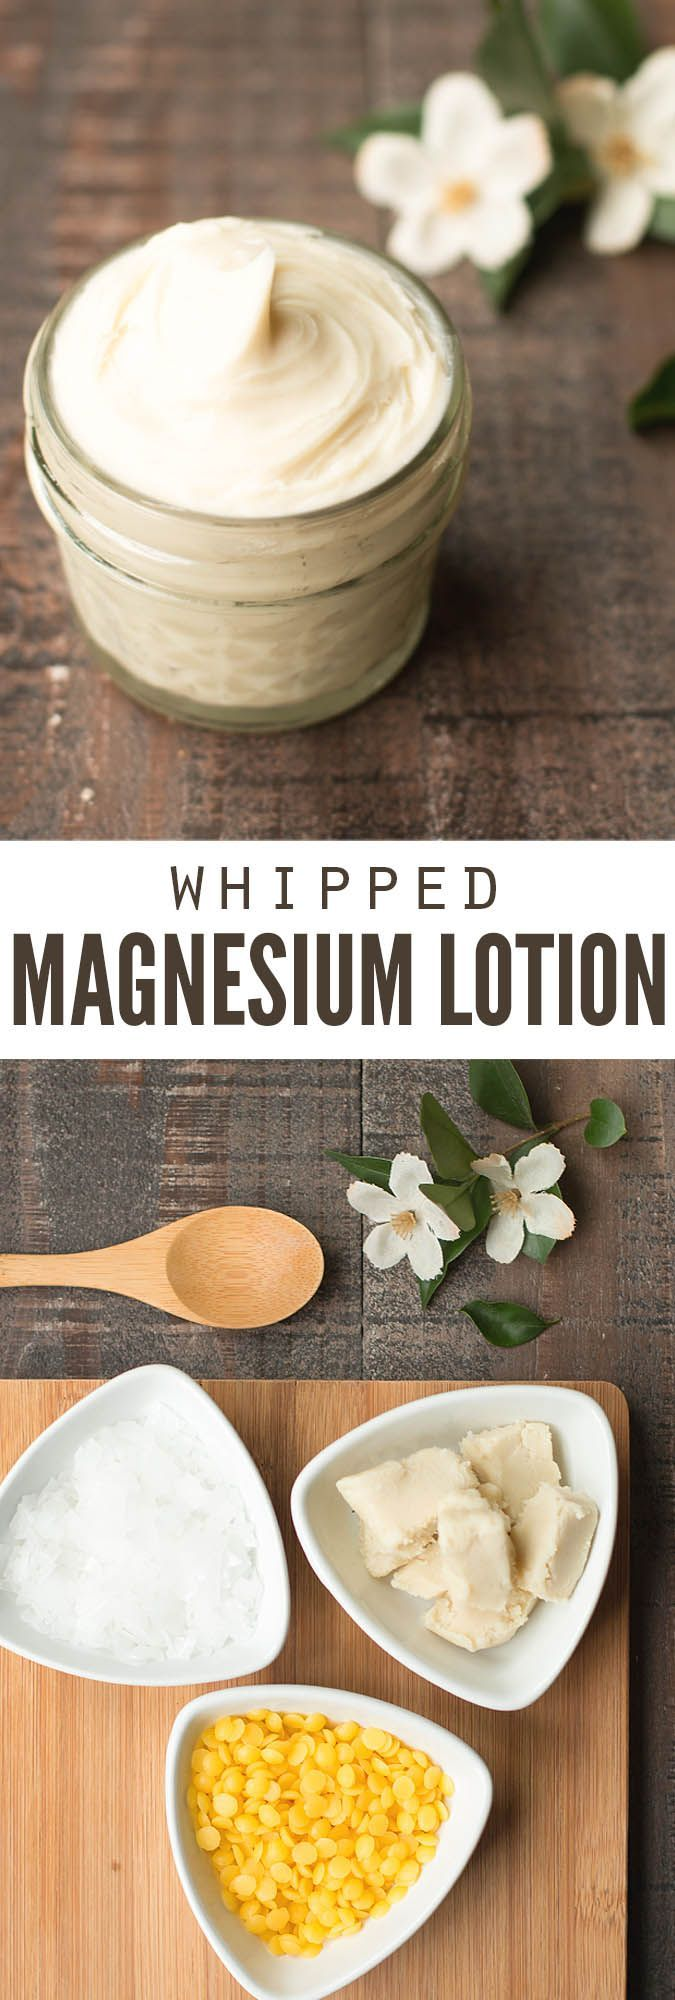 This magnesium lotion is a miracle worker. I sleep better, have less anxiety and I'm happier to be around too! The recipe is incredibly easy and ready in just 15 minutes!